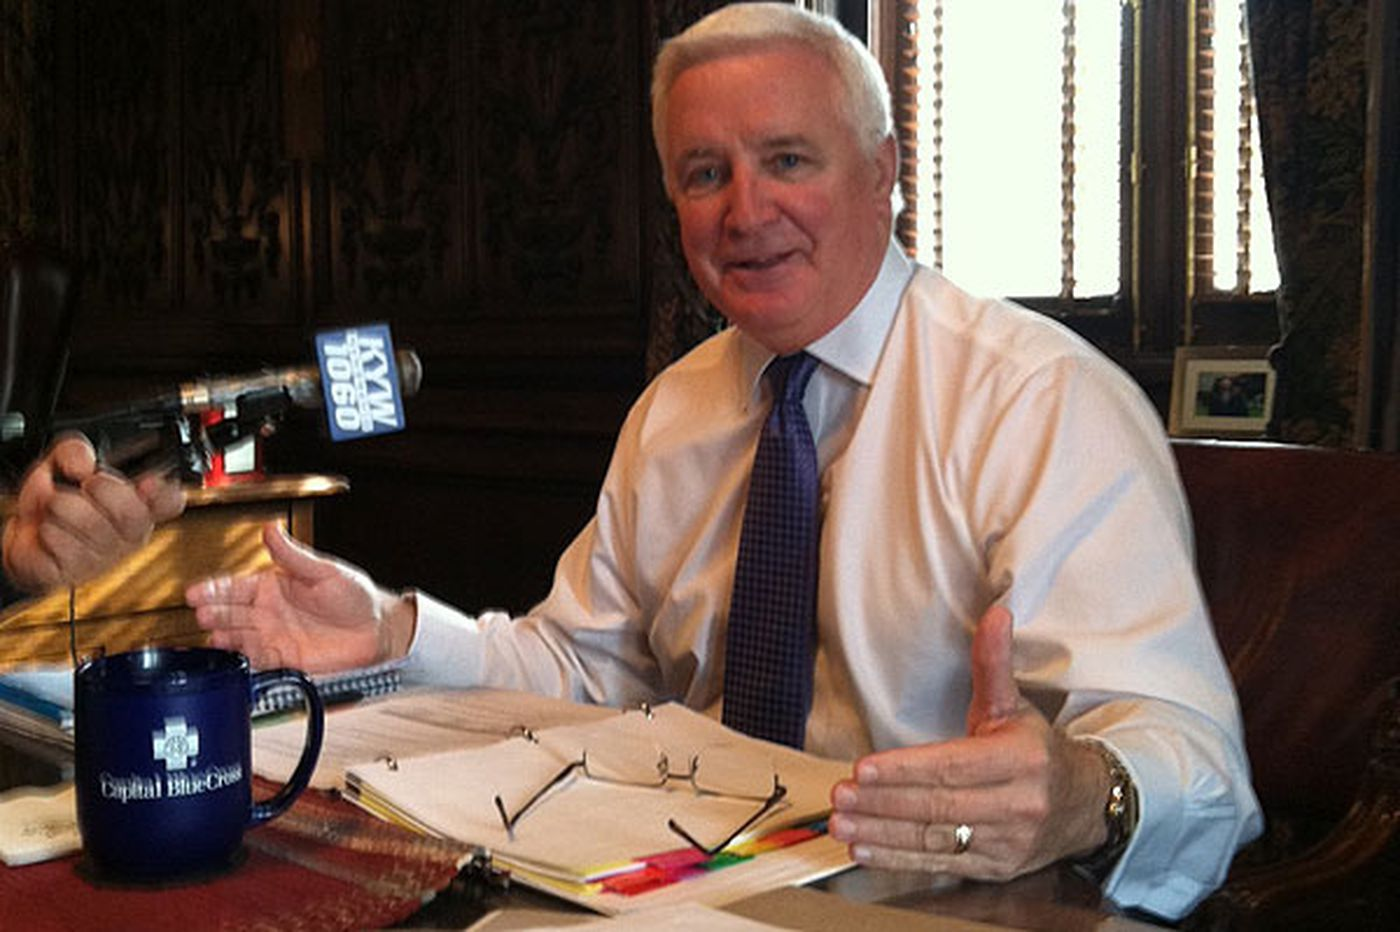 Corbett may face obstacles in bid for reelection